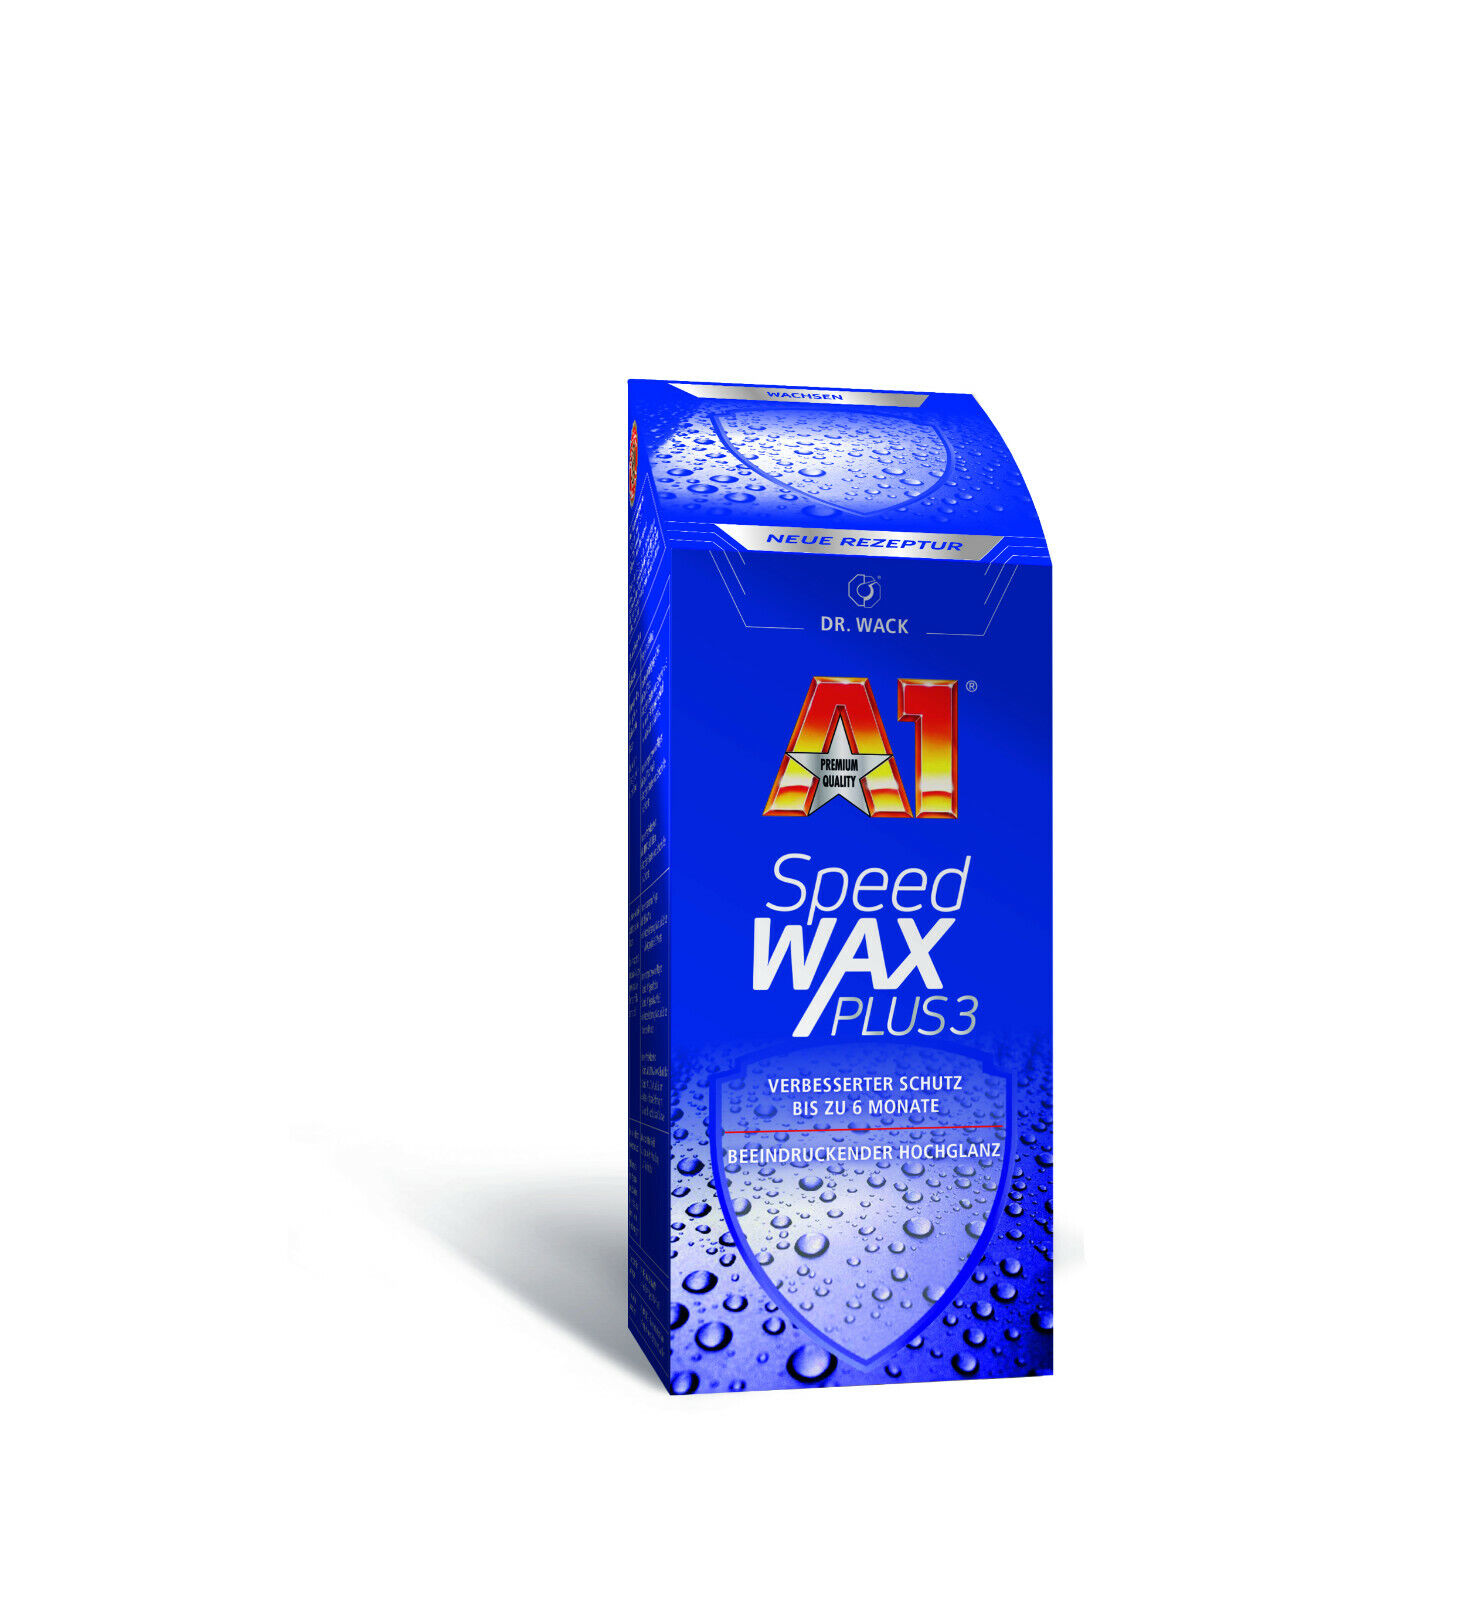 Dr. Wack A1 Speed Wax Plus 3 Lack Schutz Carnauba Wachs 250ml 2731